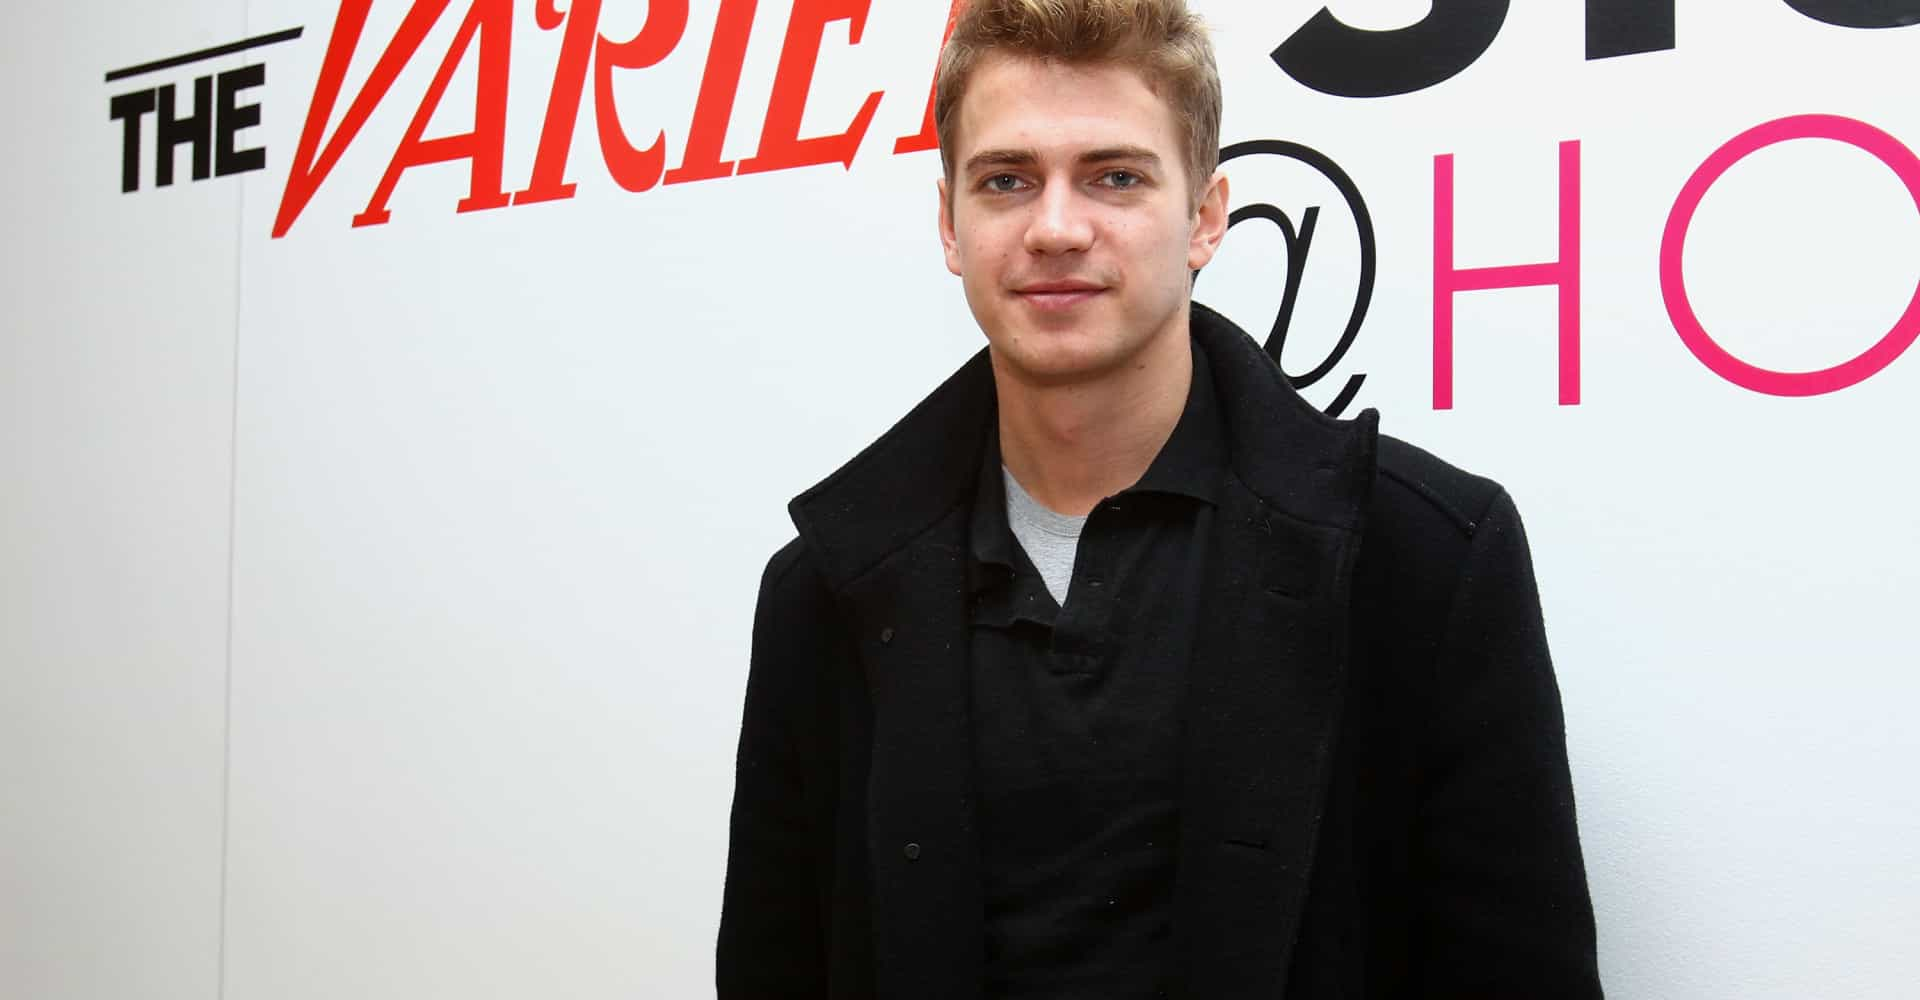 In a galaxy far, far away, Hayden Christensen is more than just 'Star Wars'